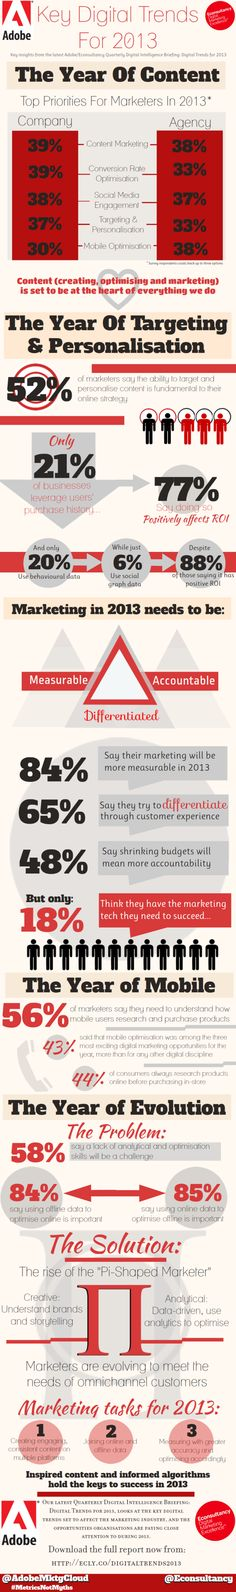 Key digital trends for 2013 [infographic]   Econsultancy